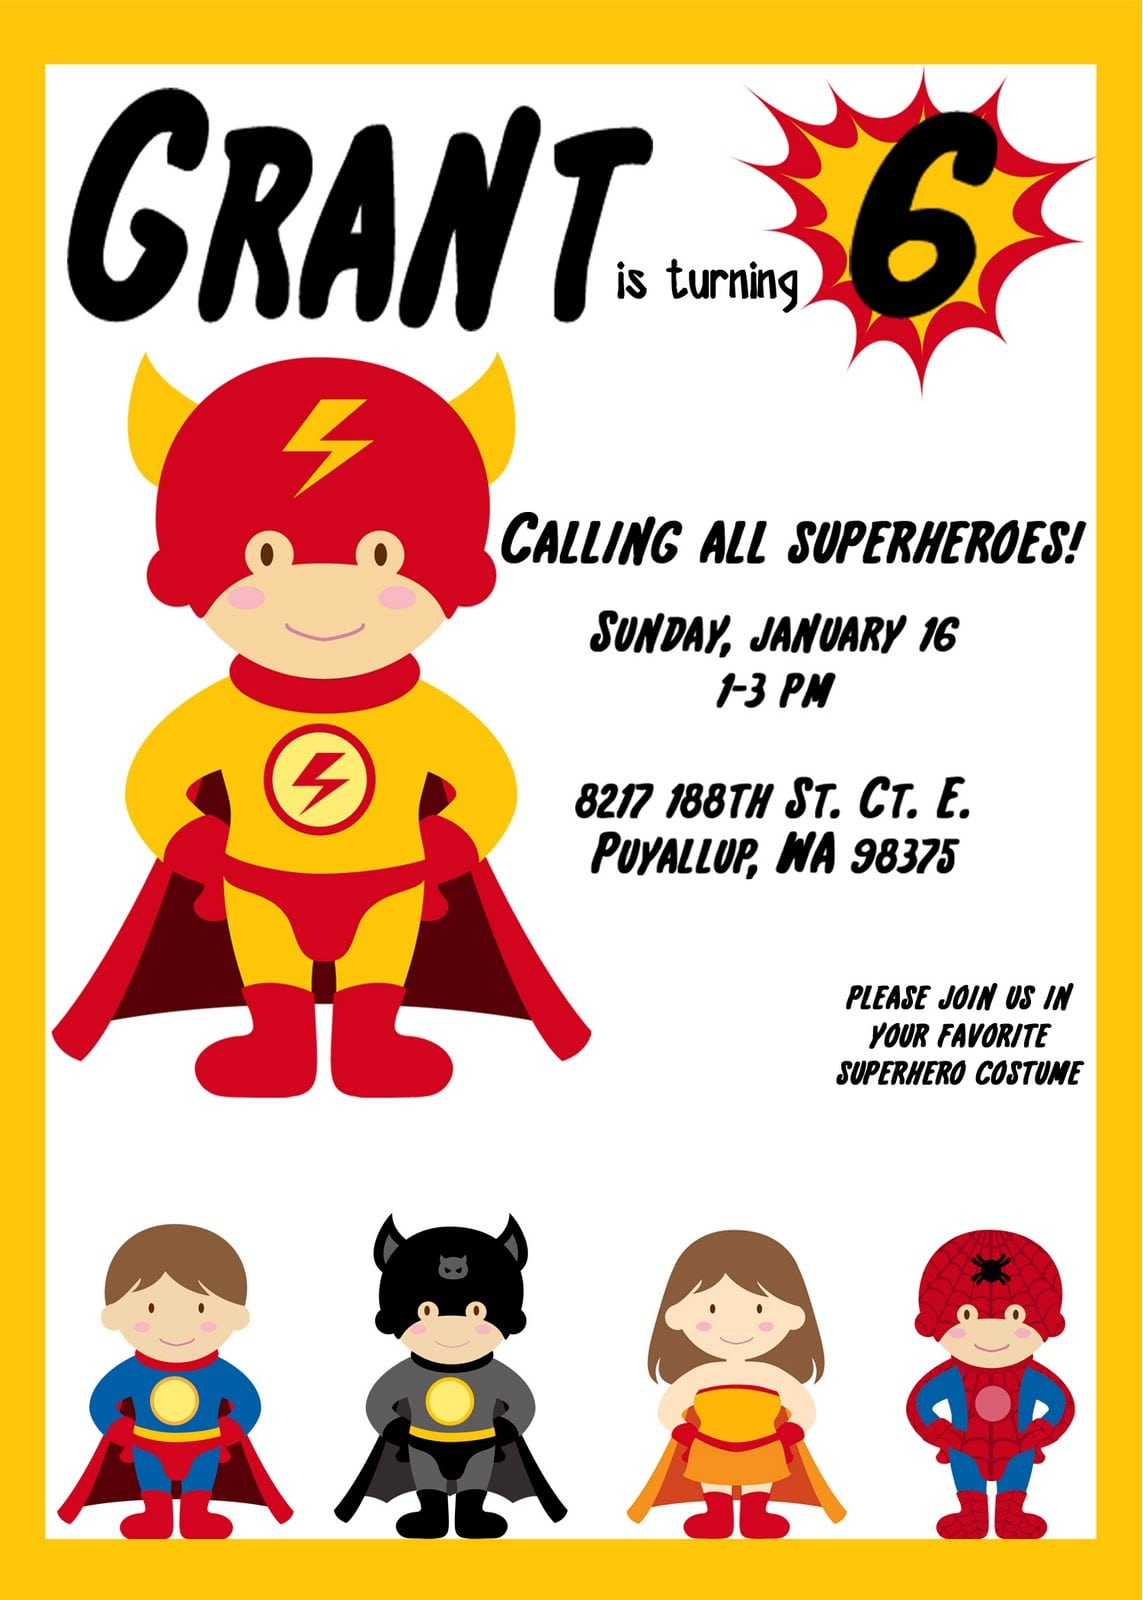 Free Superhero Party Invitations Ideas About Free Superhero Party